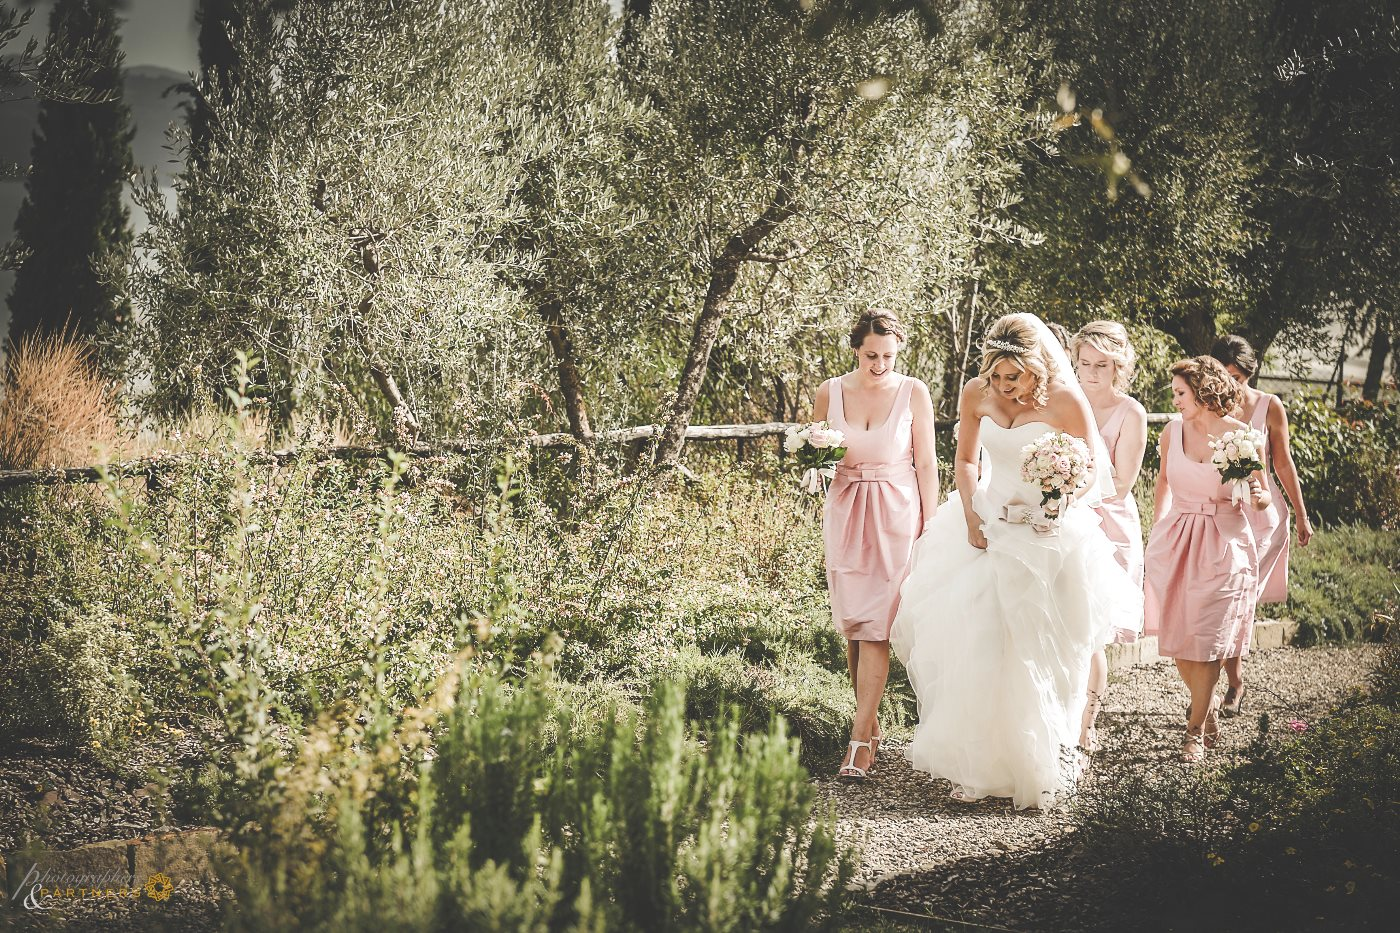 wedding_photographer_villa_san_crispolto_06.jpg